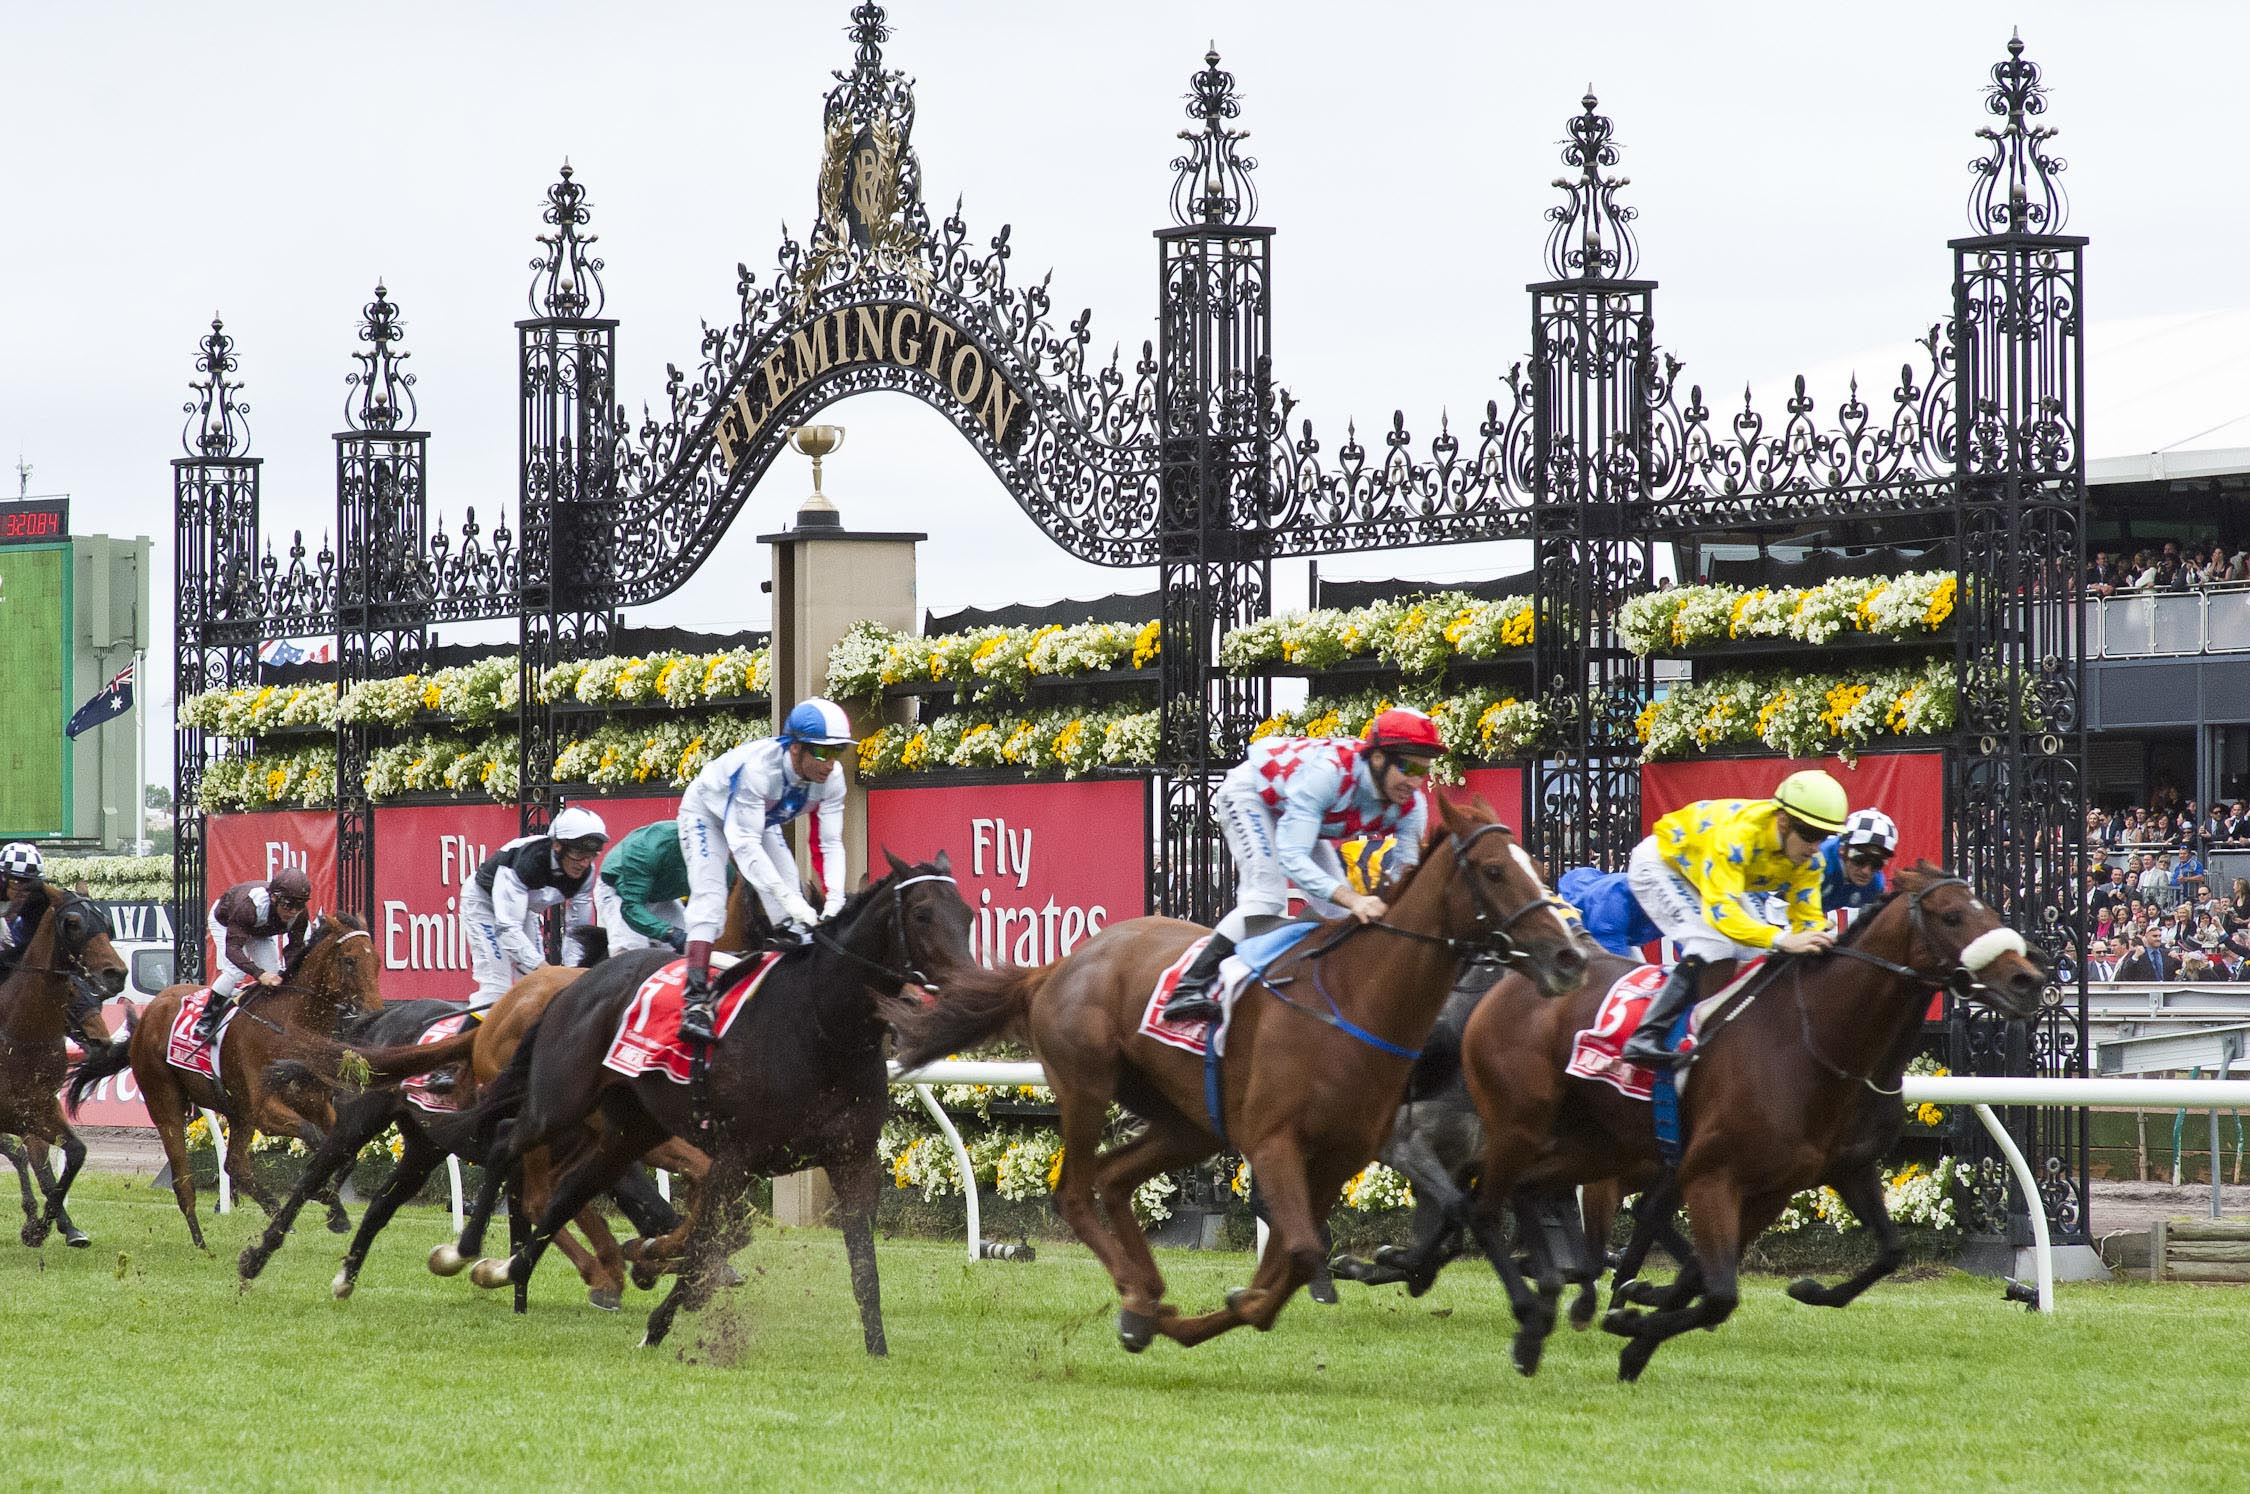 emirates melbourne cup betting odds